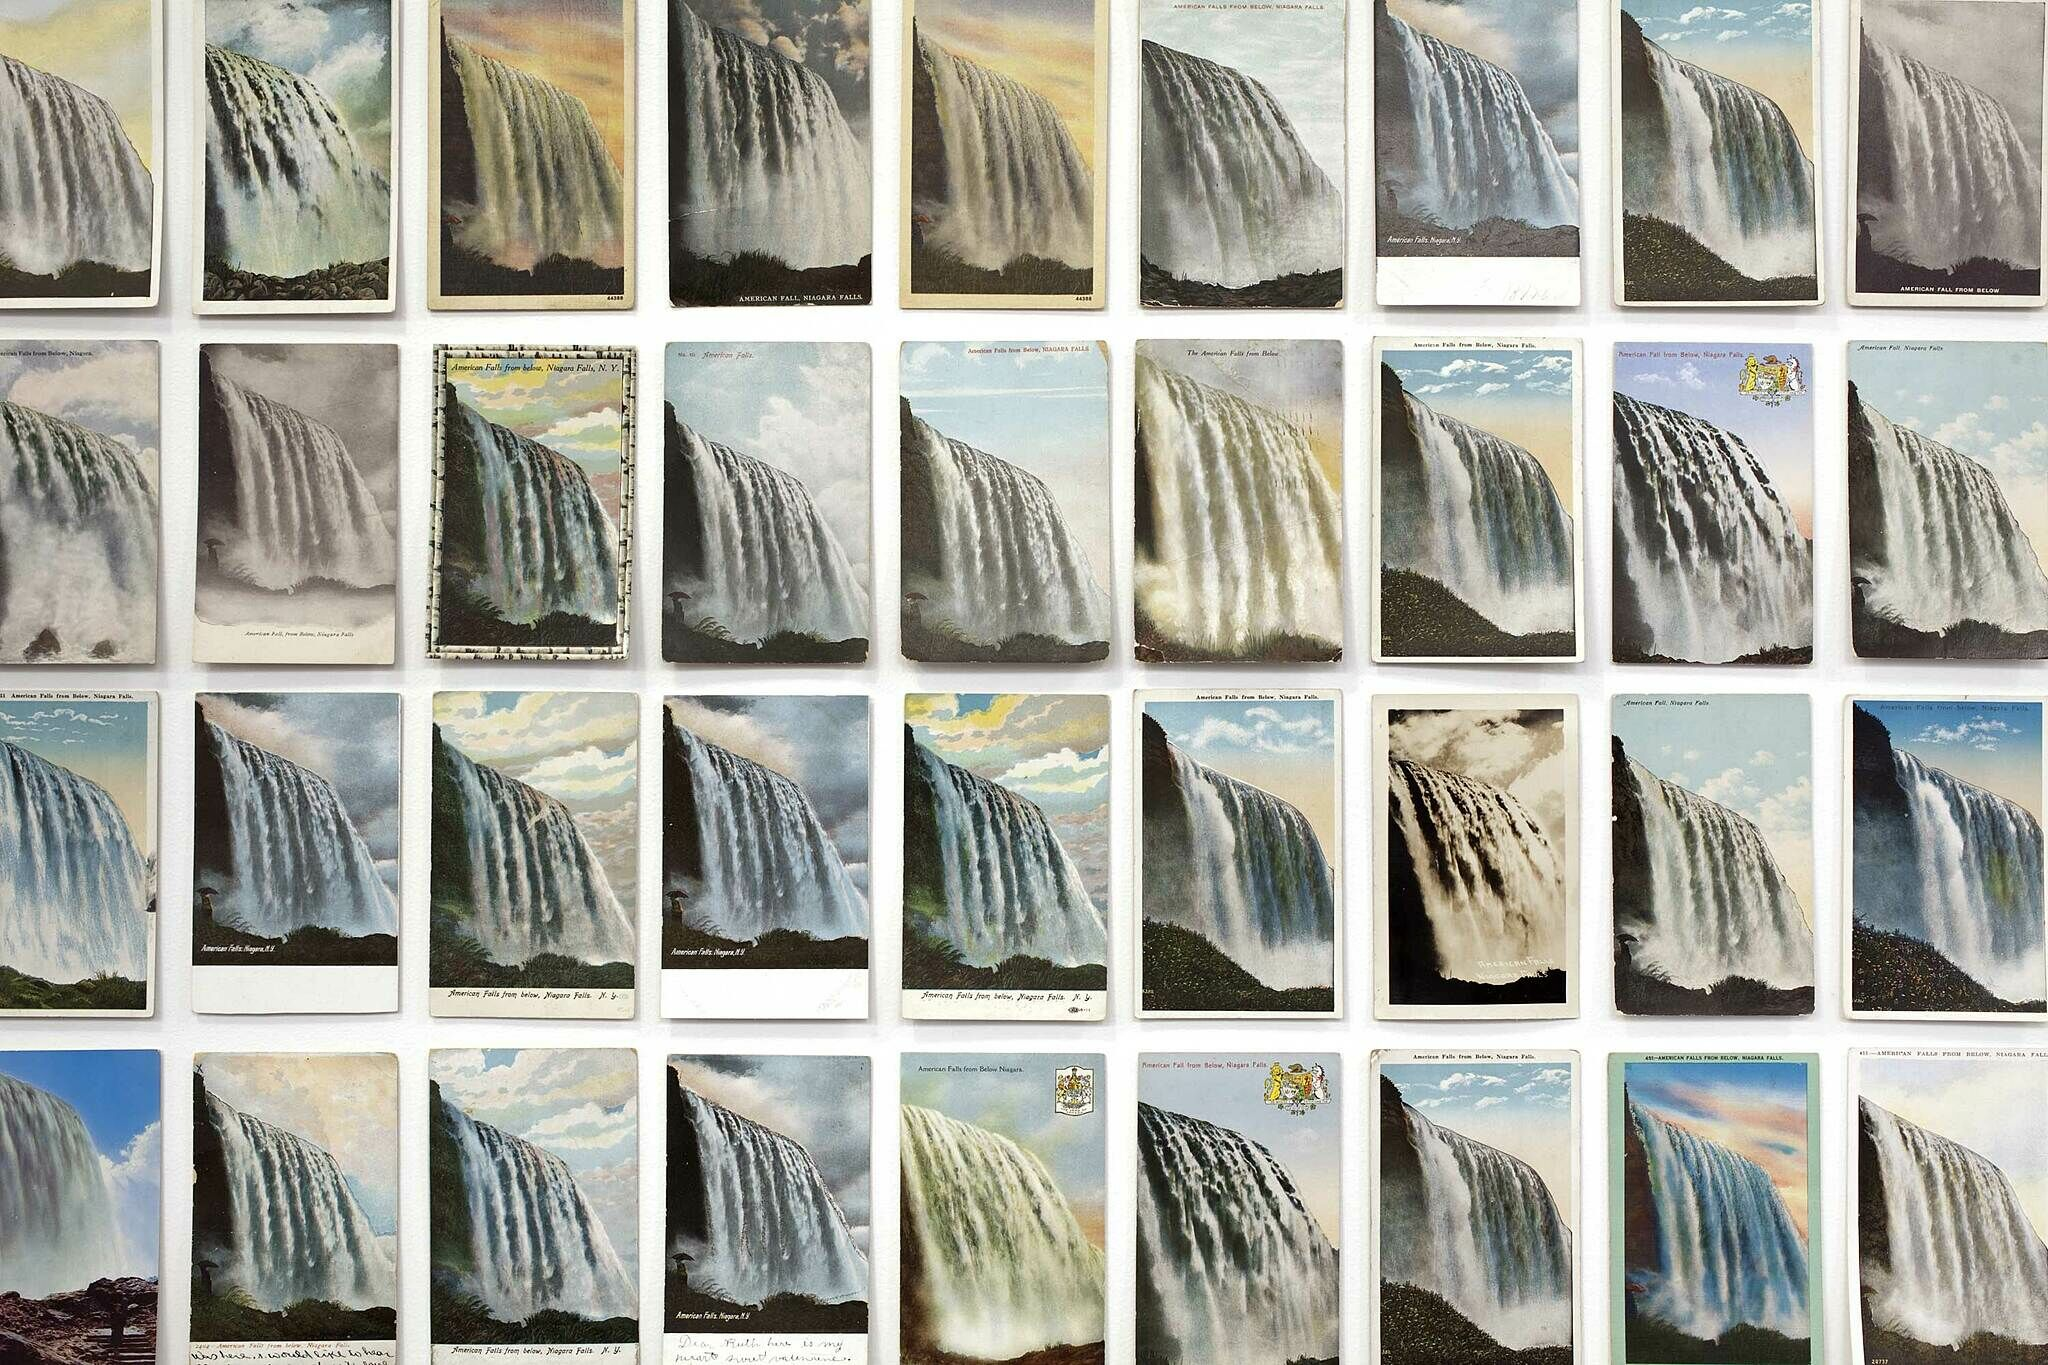 Grid of postcards.